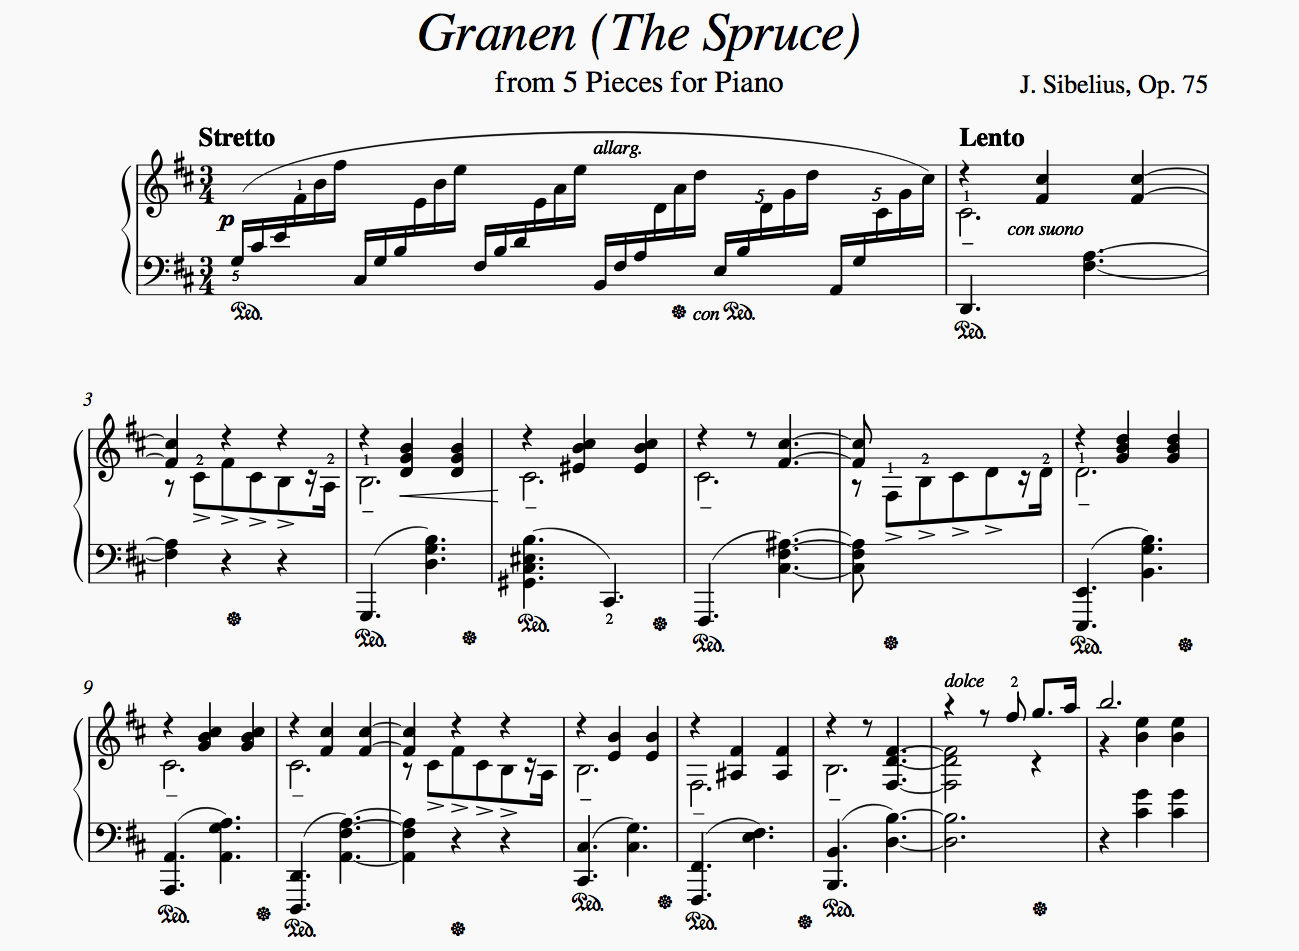 Complex piano sheet music in MuseScore